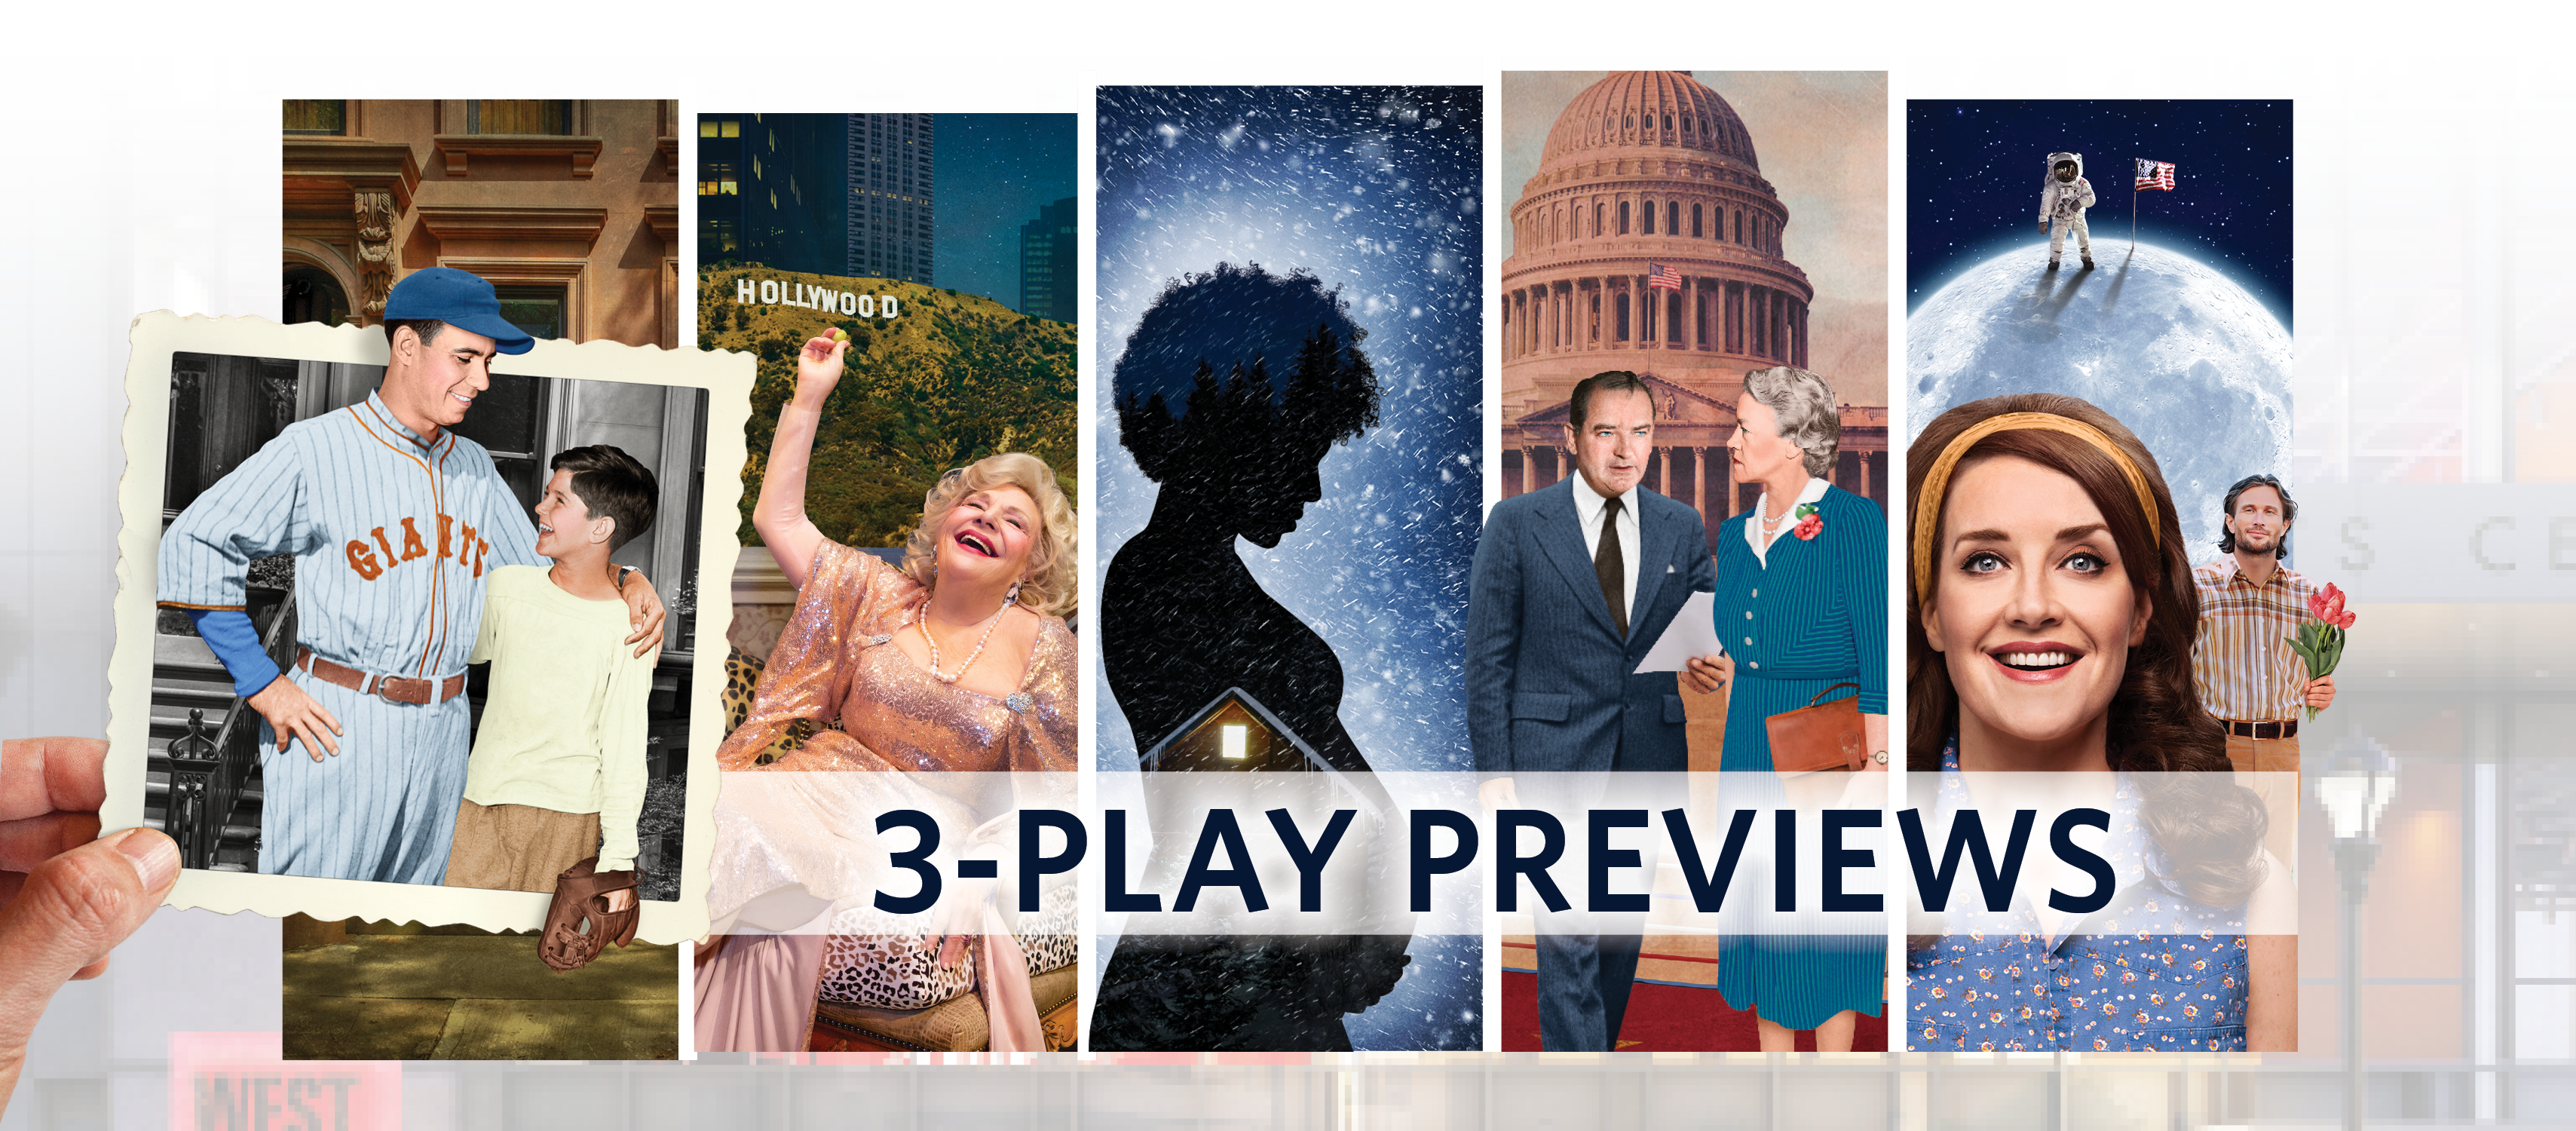 Choose Your Own 3-Play Package (Previews)